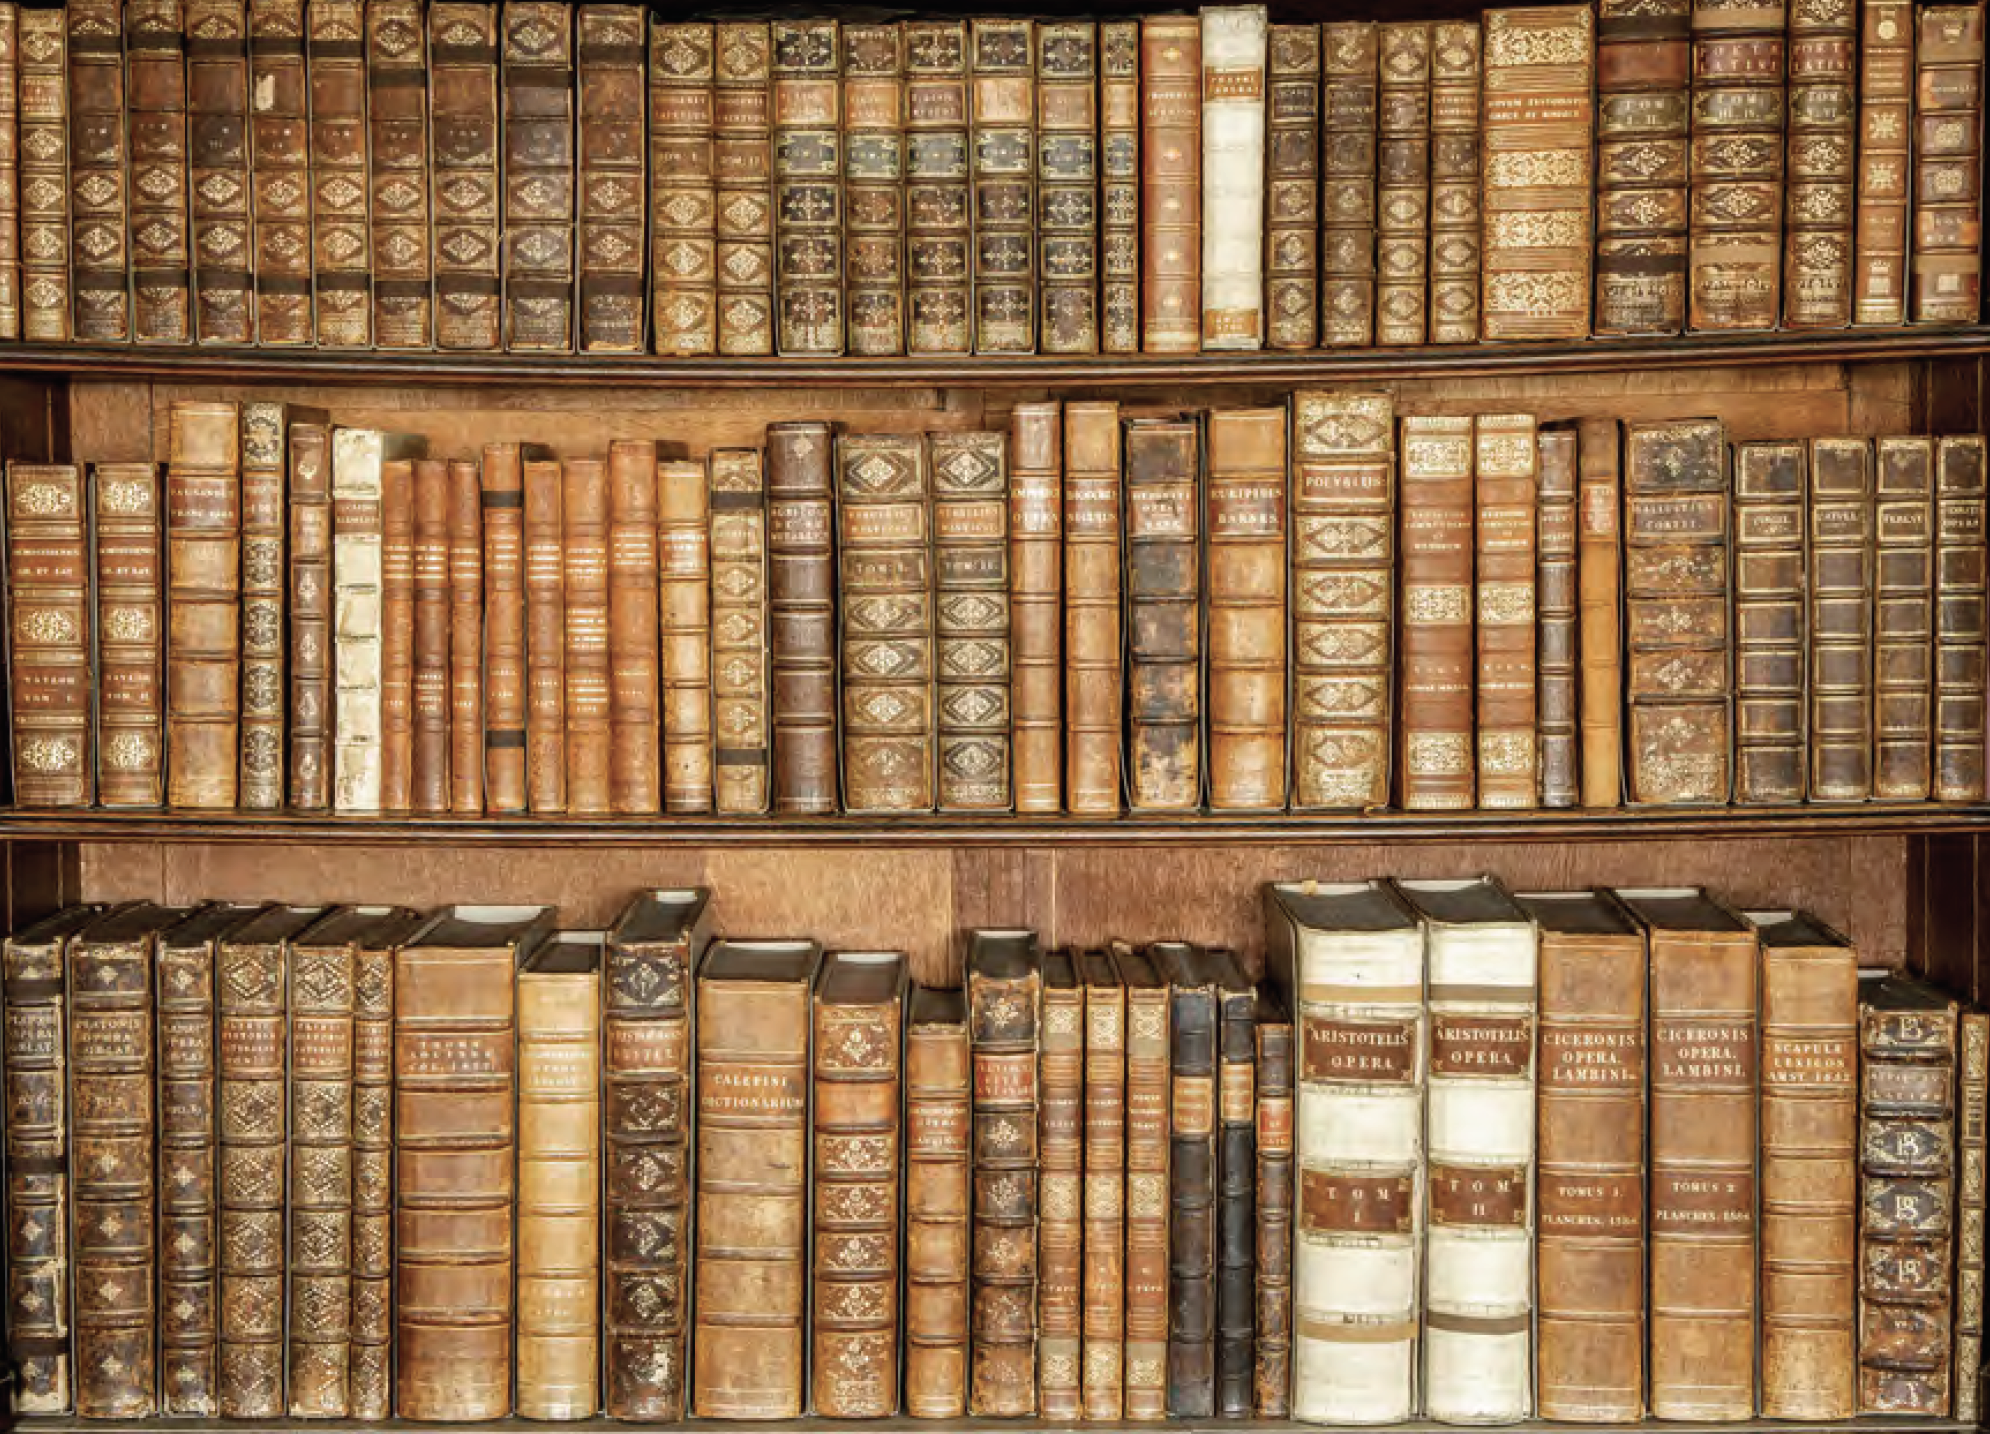 Different styles of binding on the surrounding shelves ©National Trust Images/Paul Bailey